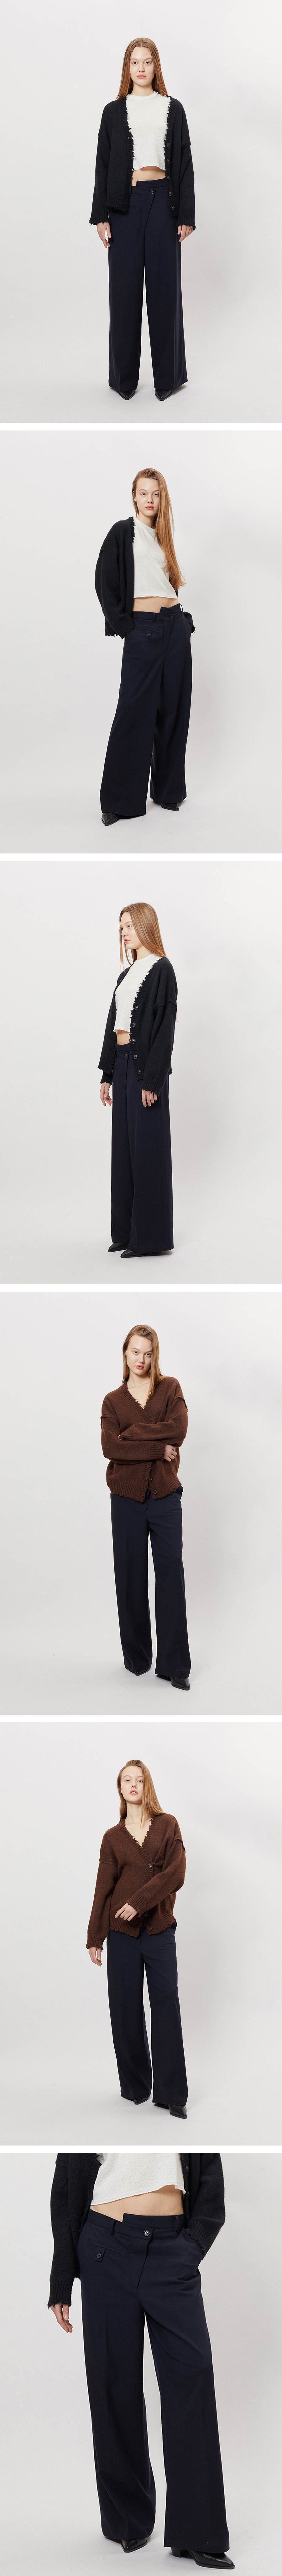 마뗑킴(MATIN KIM) DIAGONAL BUTTON TROUSERS